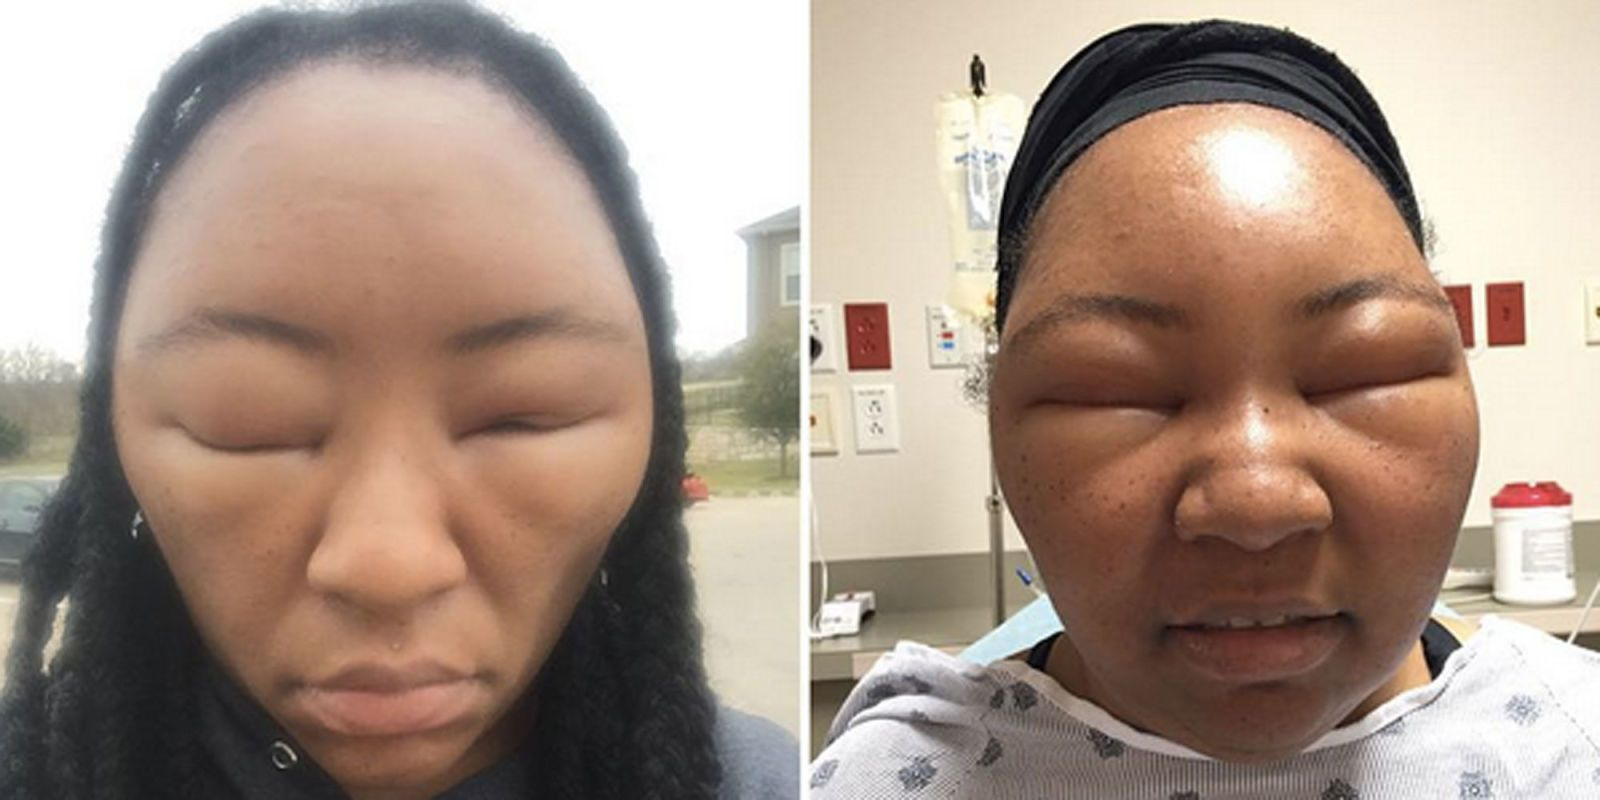 Health Vlogger Shares Photos After Scary Allergic Reaction To Henna Hair Dye